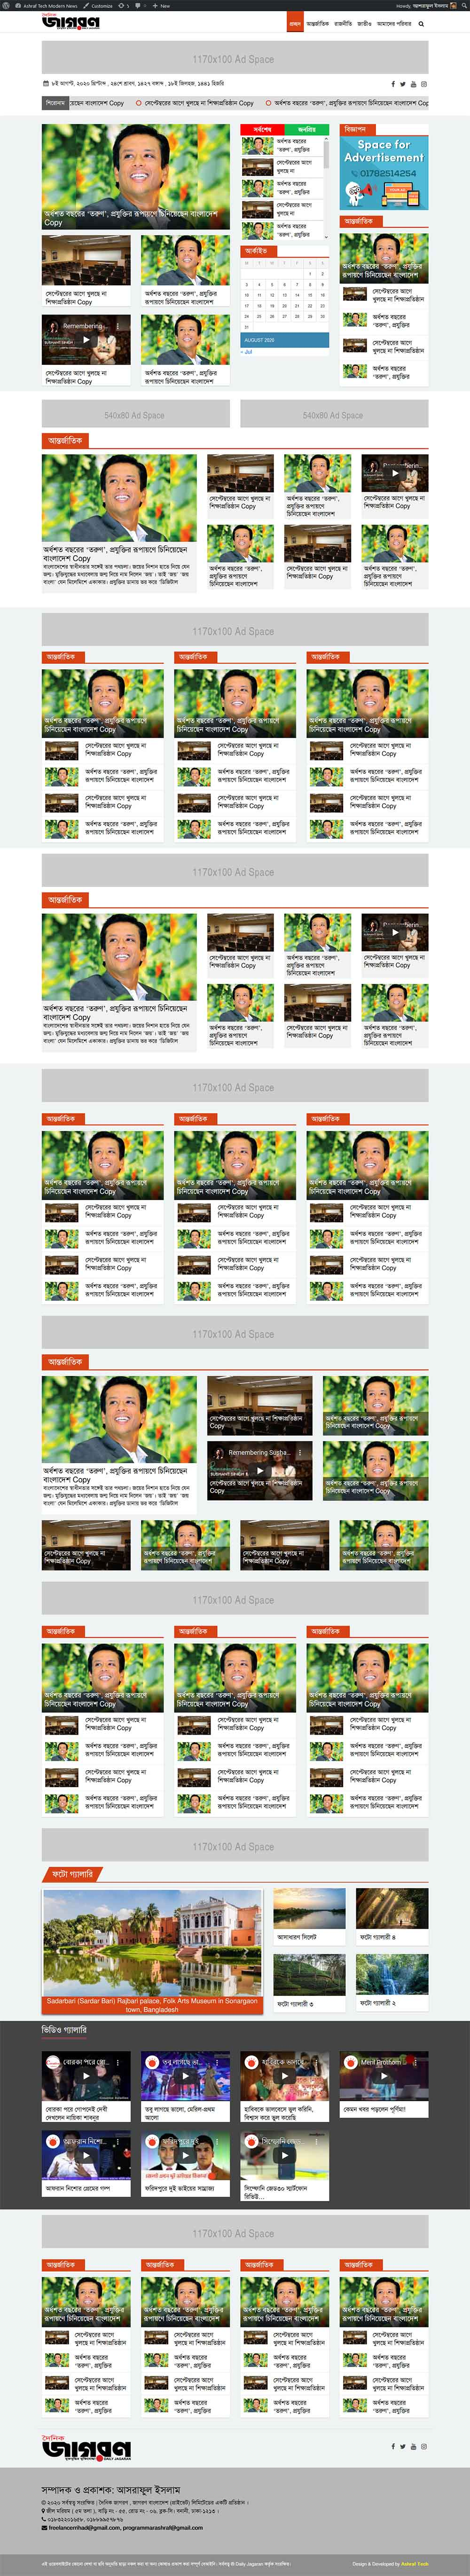 WordPress News Theme (Modern News)